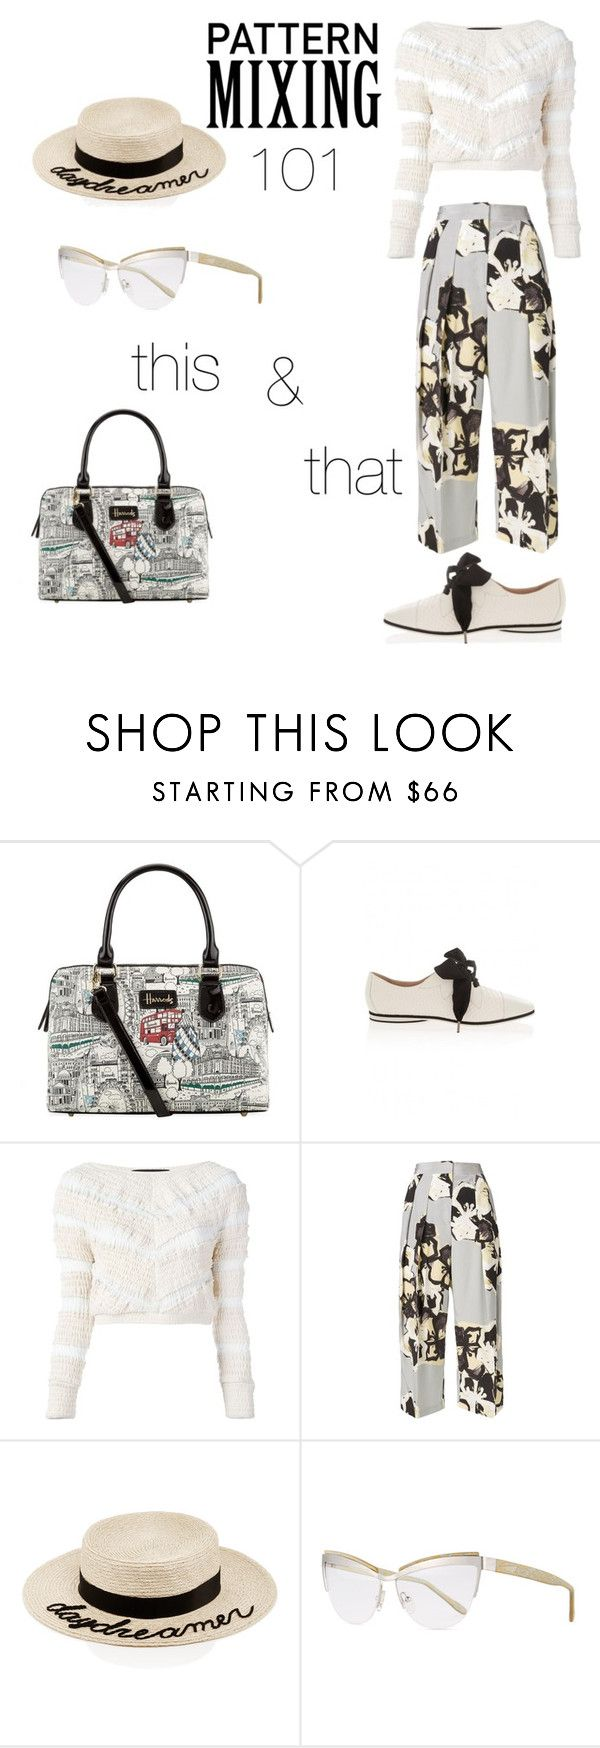 """""""Starving Artist"""" by melaniecobb ❤ liked on Polyvore featuring Harrods, Emporio Armani, Jay Ahr, By Malene Birger, Eugenia Kim, Prism and patternmixing"""